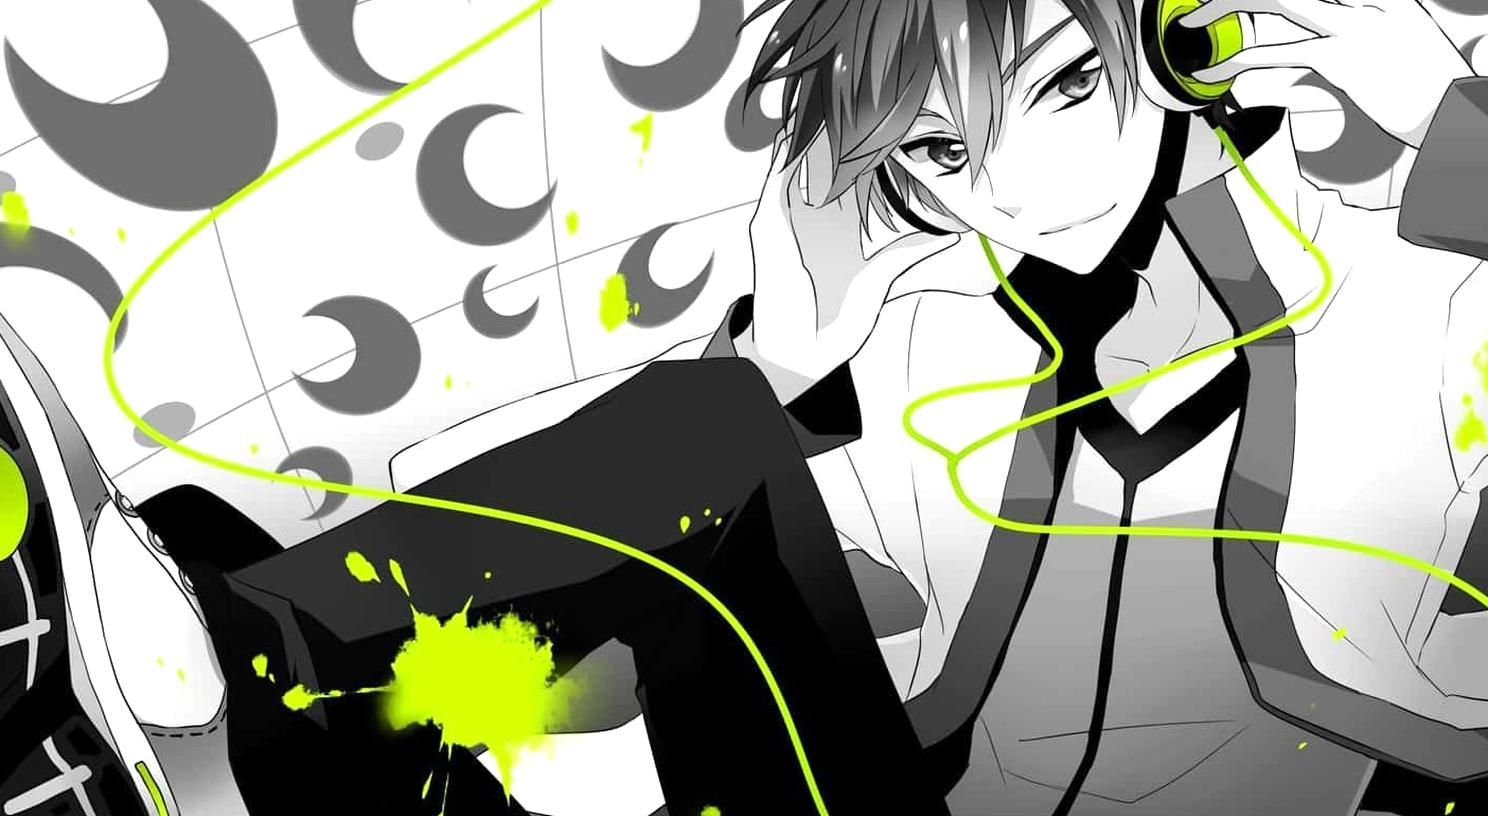 Cool Collections Of Anime Boy Wallpaper For Desktop Laptop And Mobiles Find More Wallpaper For Your High Hvga 720p Anime Music Anime Anime Boy With Headphones